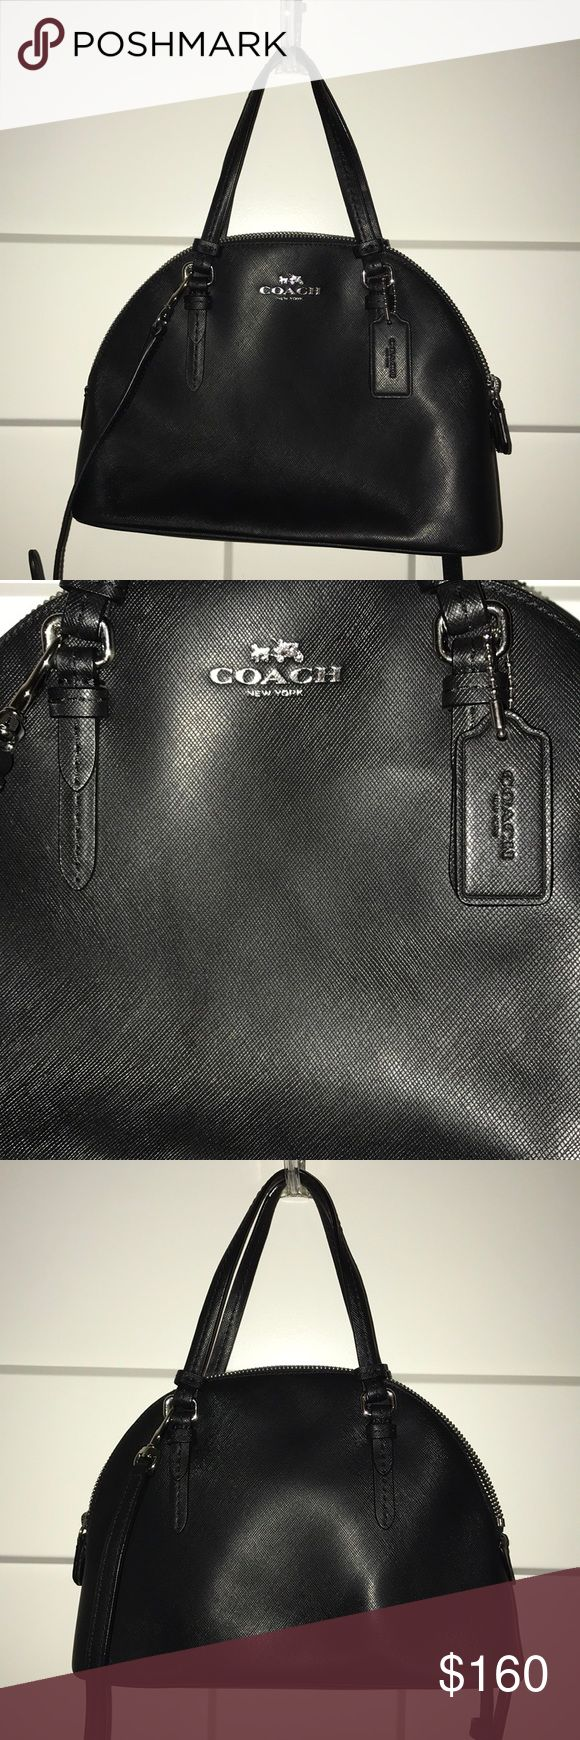 Coach Cross-Body Satchel 100% Authentic ! Black coach purse in great condition! Easy to clean! Can be used as a cross-body or carried by the top handles. Used a handful of times. Dimensions are in the pictures! Coach Bags Crossbody Bags